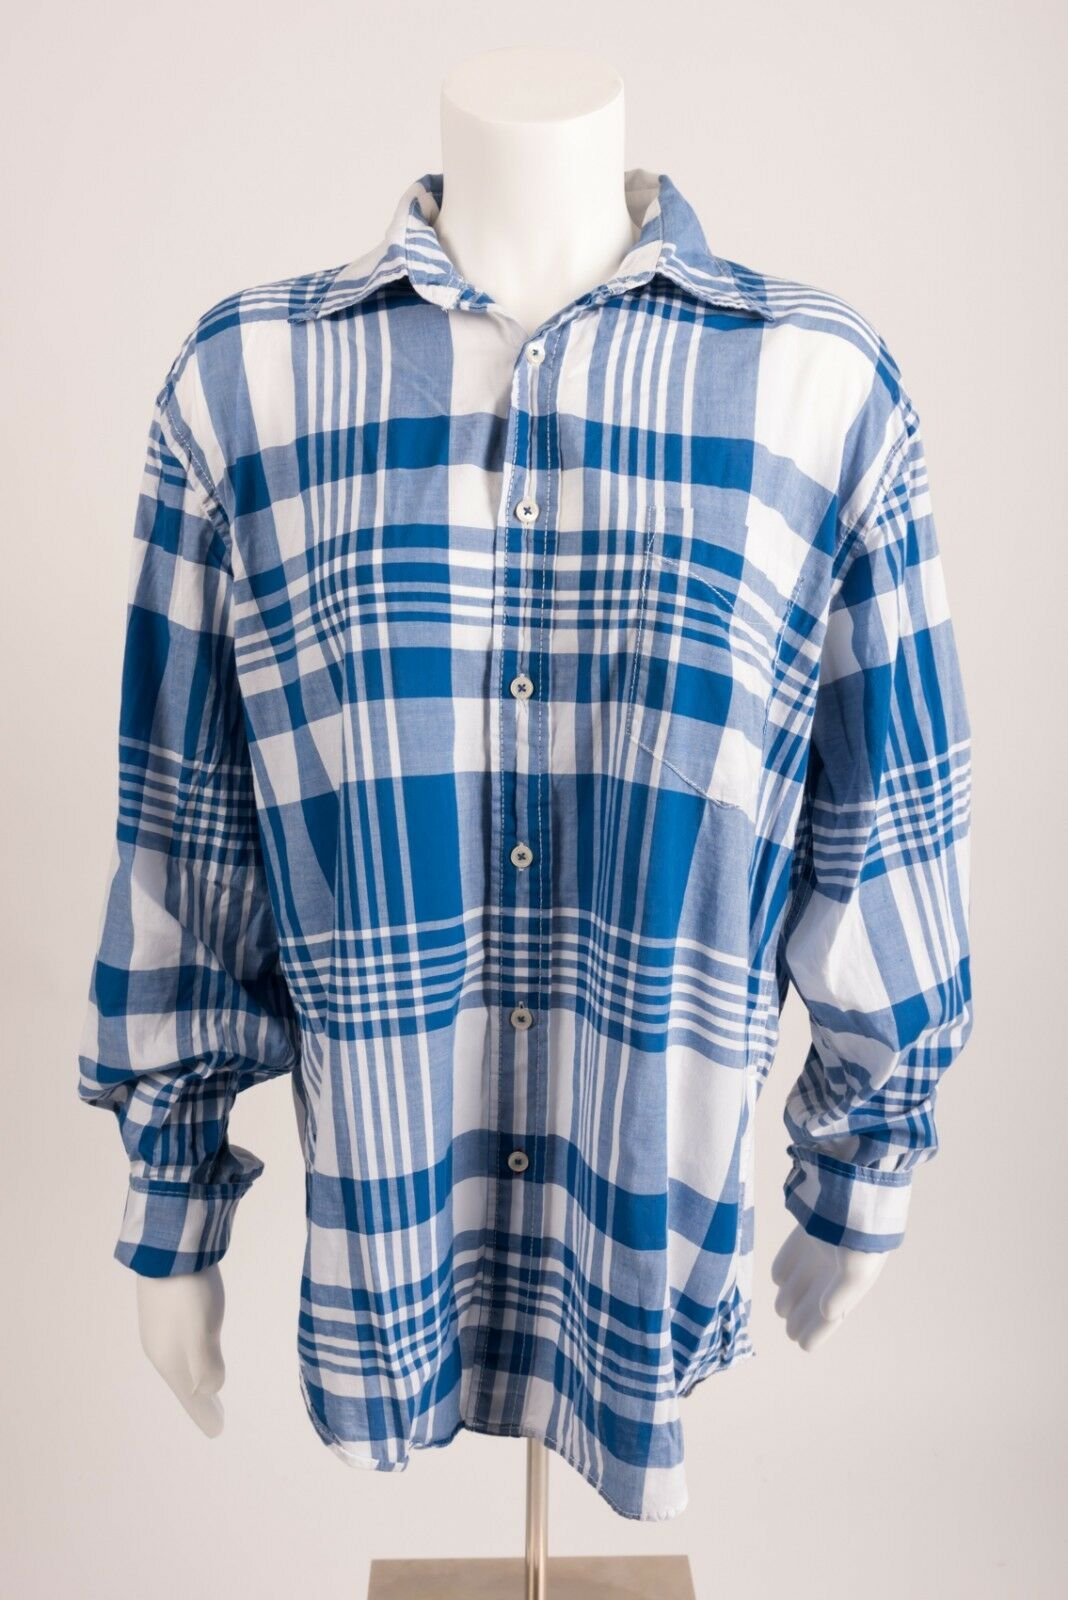 Primary image for Boden Mens Plaid Shirt Button Down Oxford Medium M Blue White Front Pocket L/S